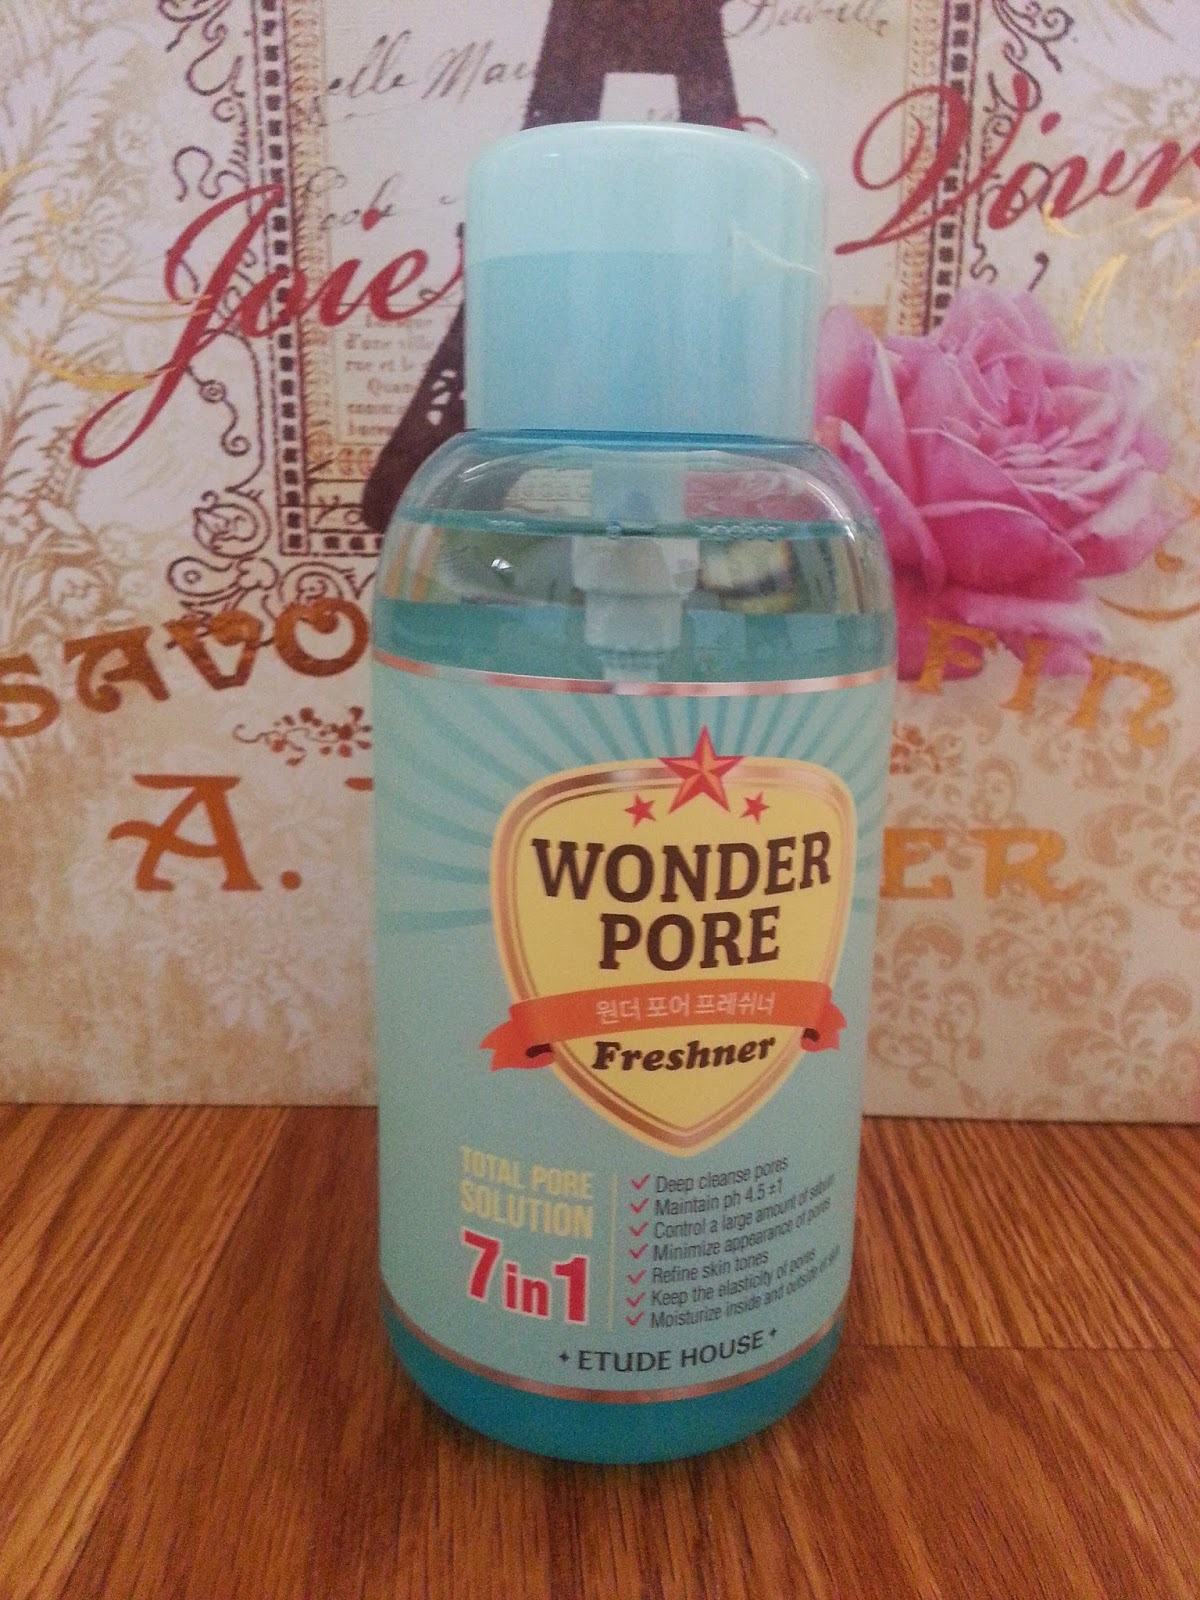 Etude House Wonder Pore Freshner 7 in 1